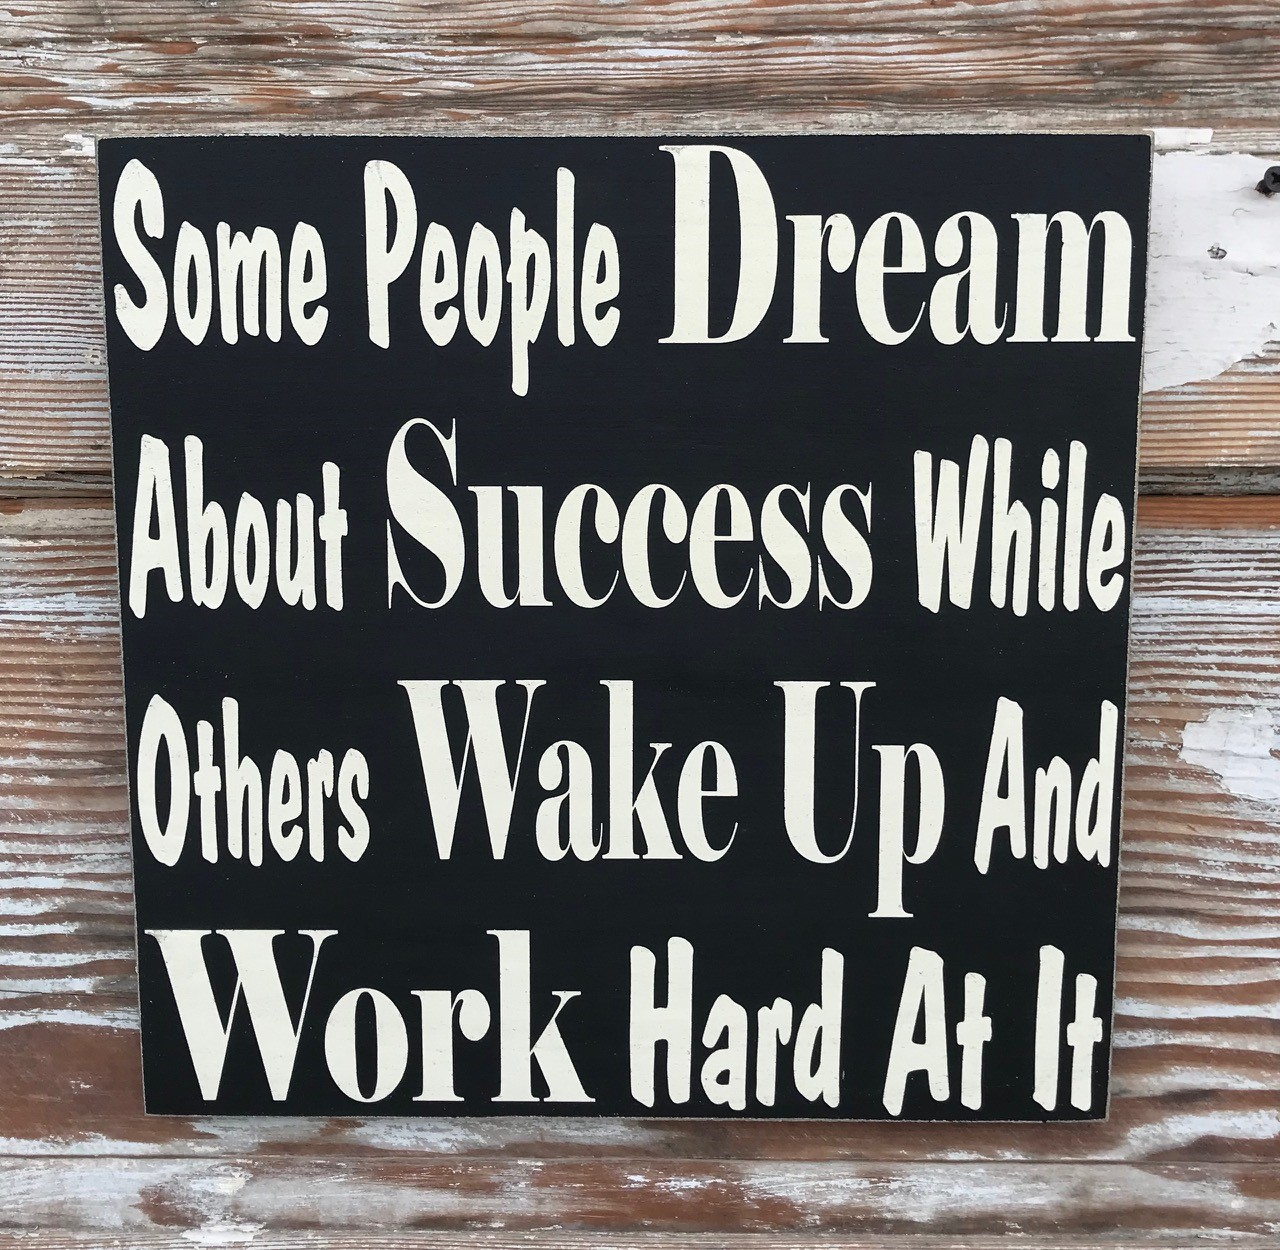 Some People Dream About Success While Others Wake Up And Work Hard At It.  Wood Sign